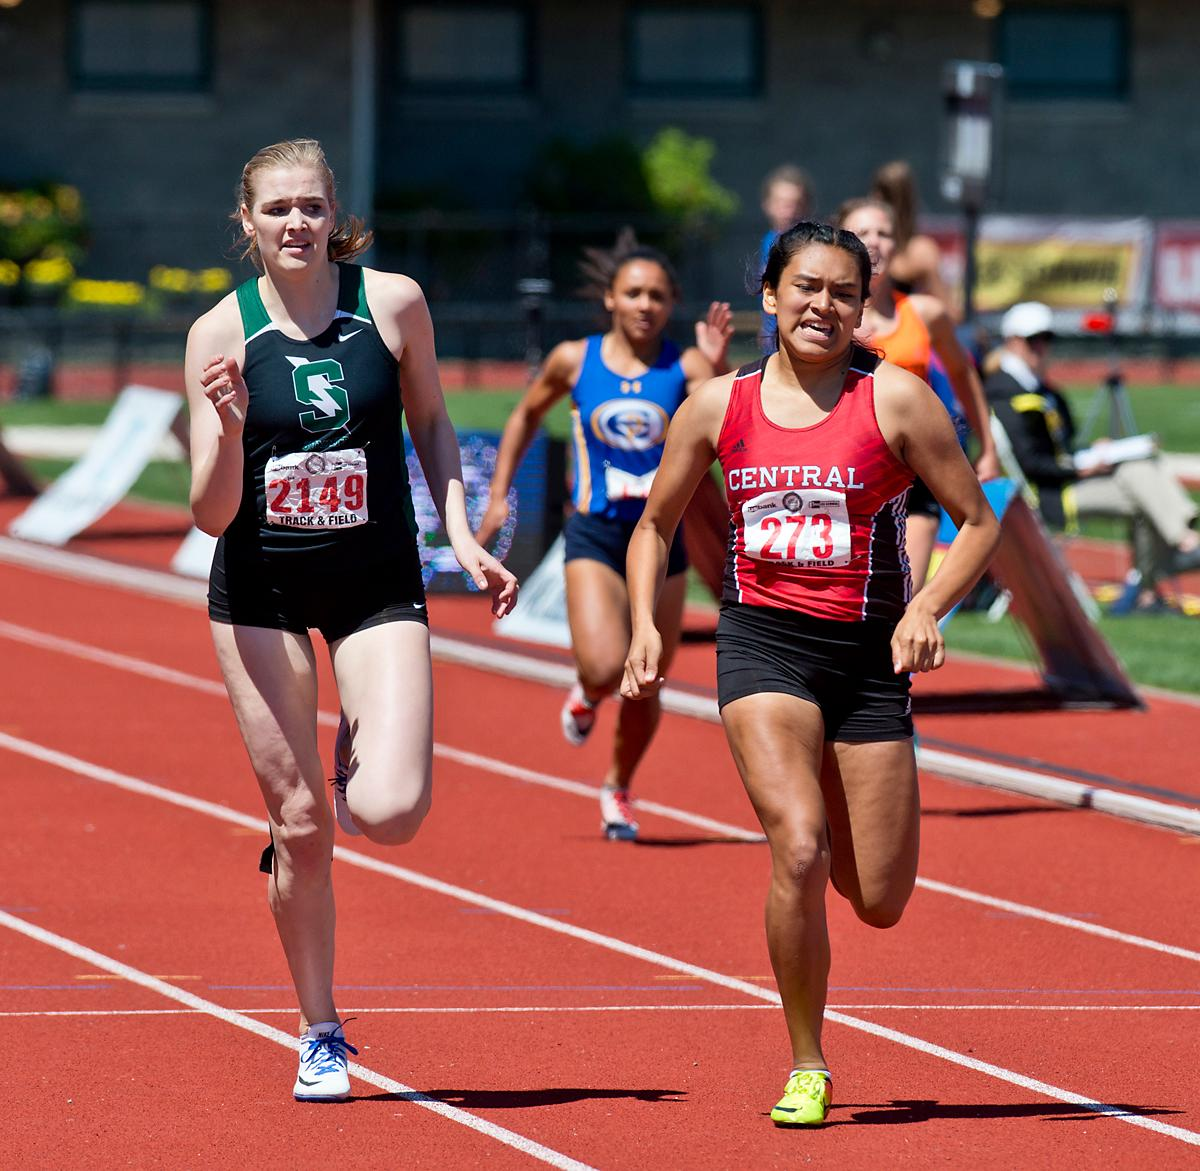 Bethanie Altamirano from Central wins the 5A Girls 400 meter dash with a time of 57.67 at the OSAA Track Championship at Hayward Field on Saturday. Photo by Dan Morrison, Oregon News Lab